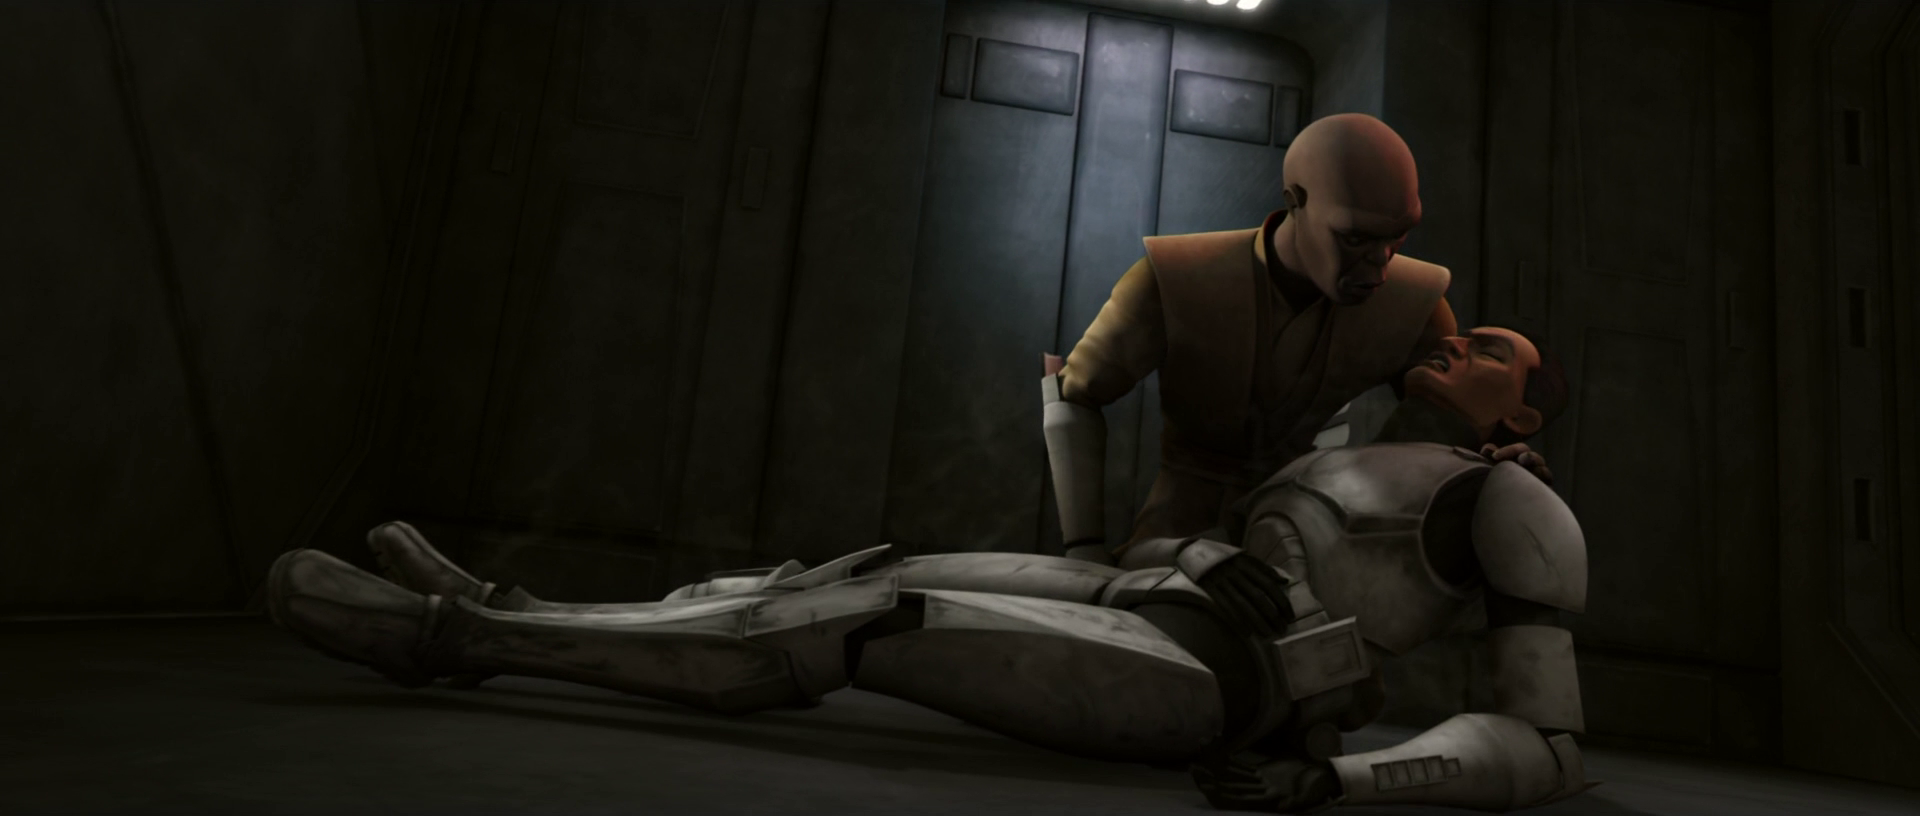 Blown up trooper2.png